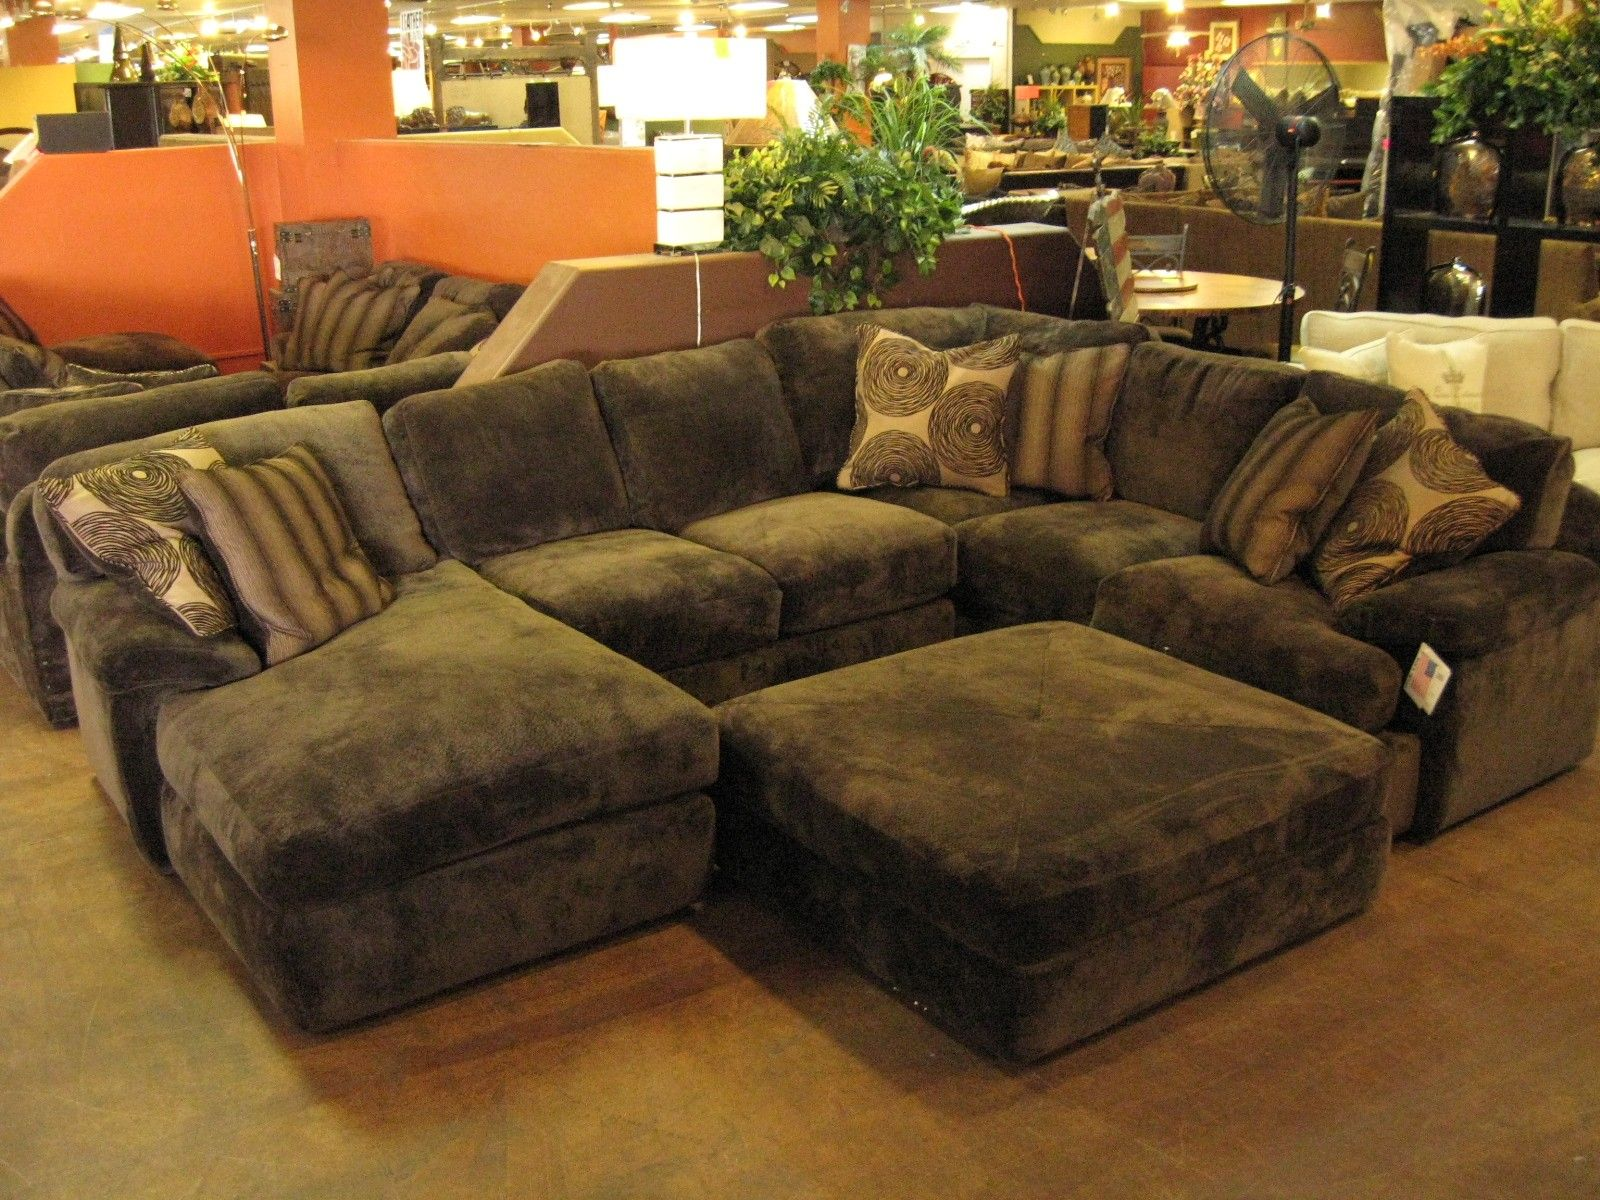 Explore Rustic Sectional Sofas, Diapers, And More!